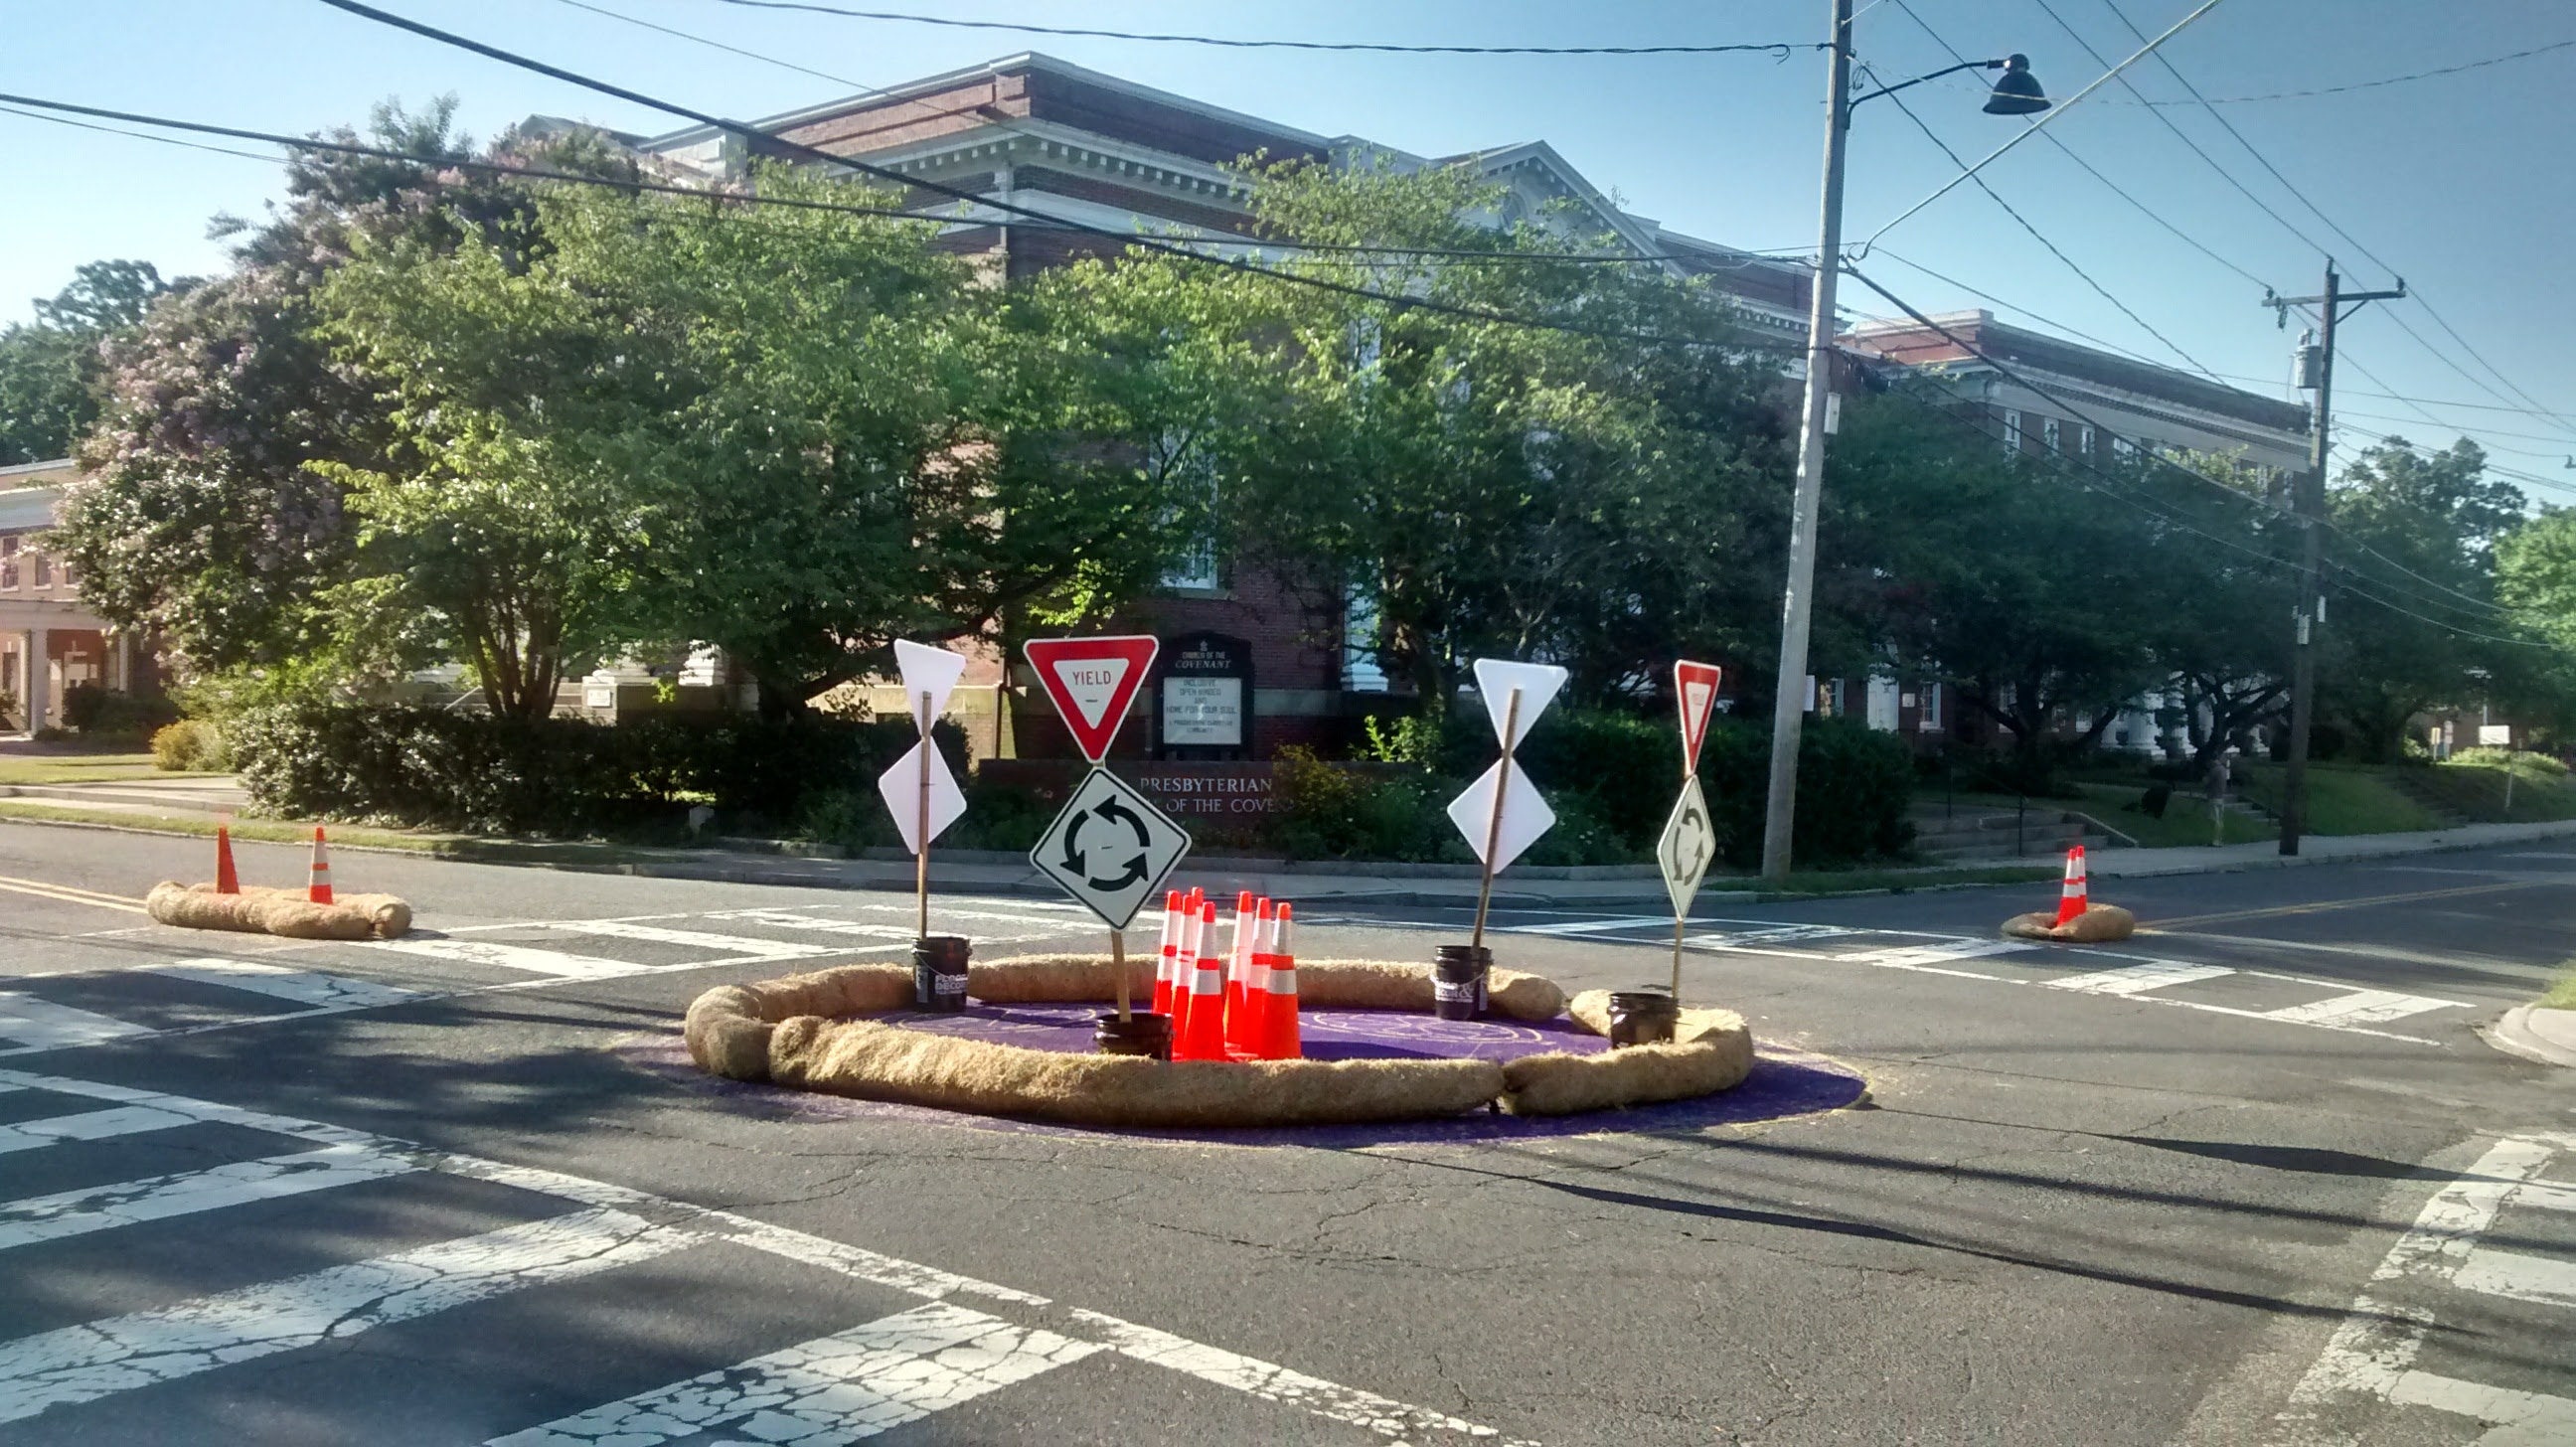 Barriers and signs in middle of intersection